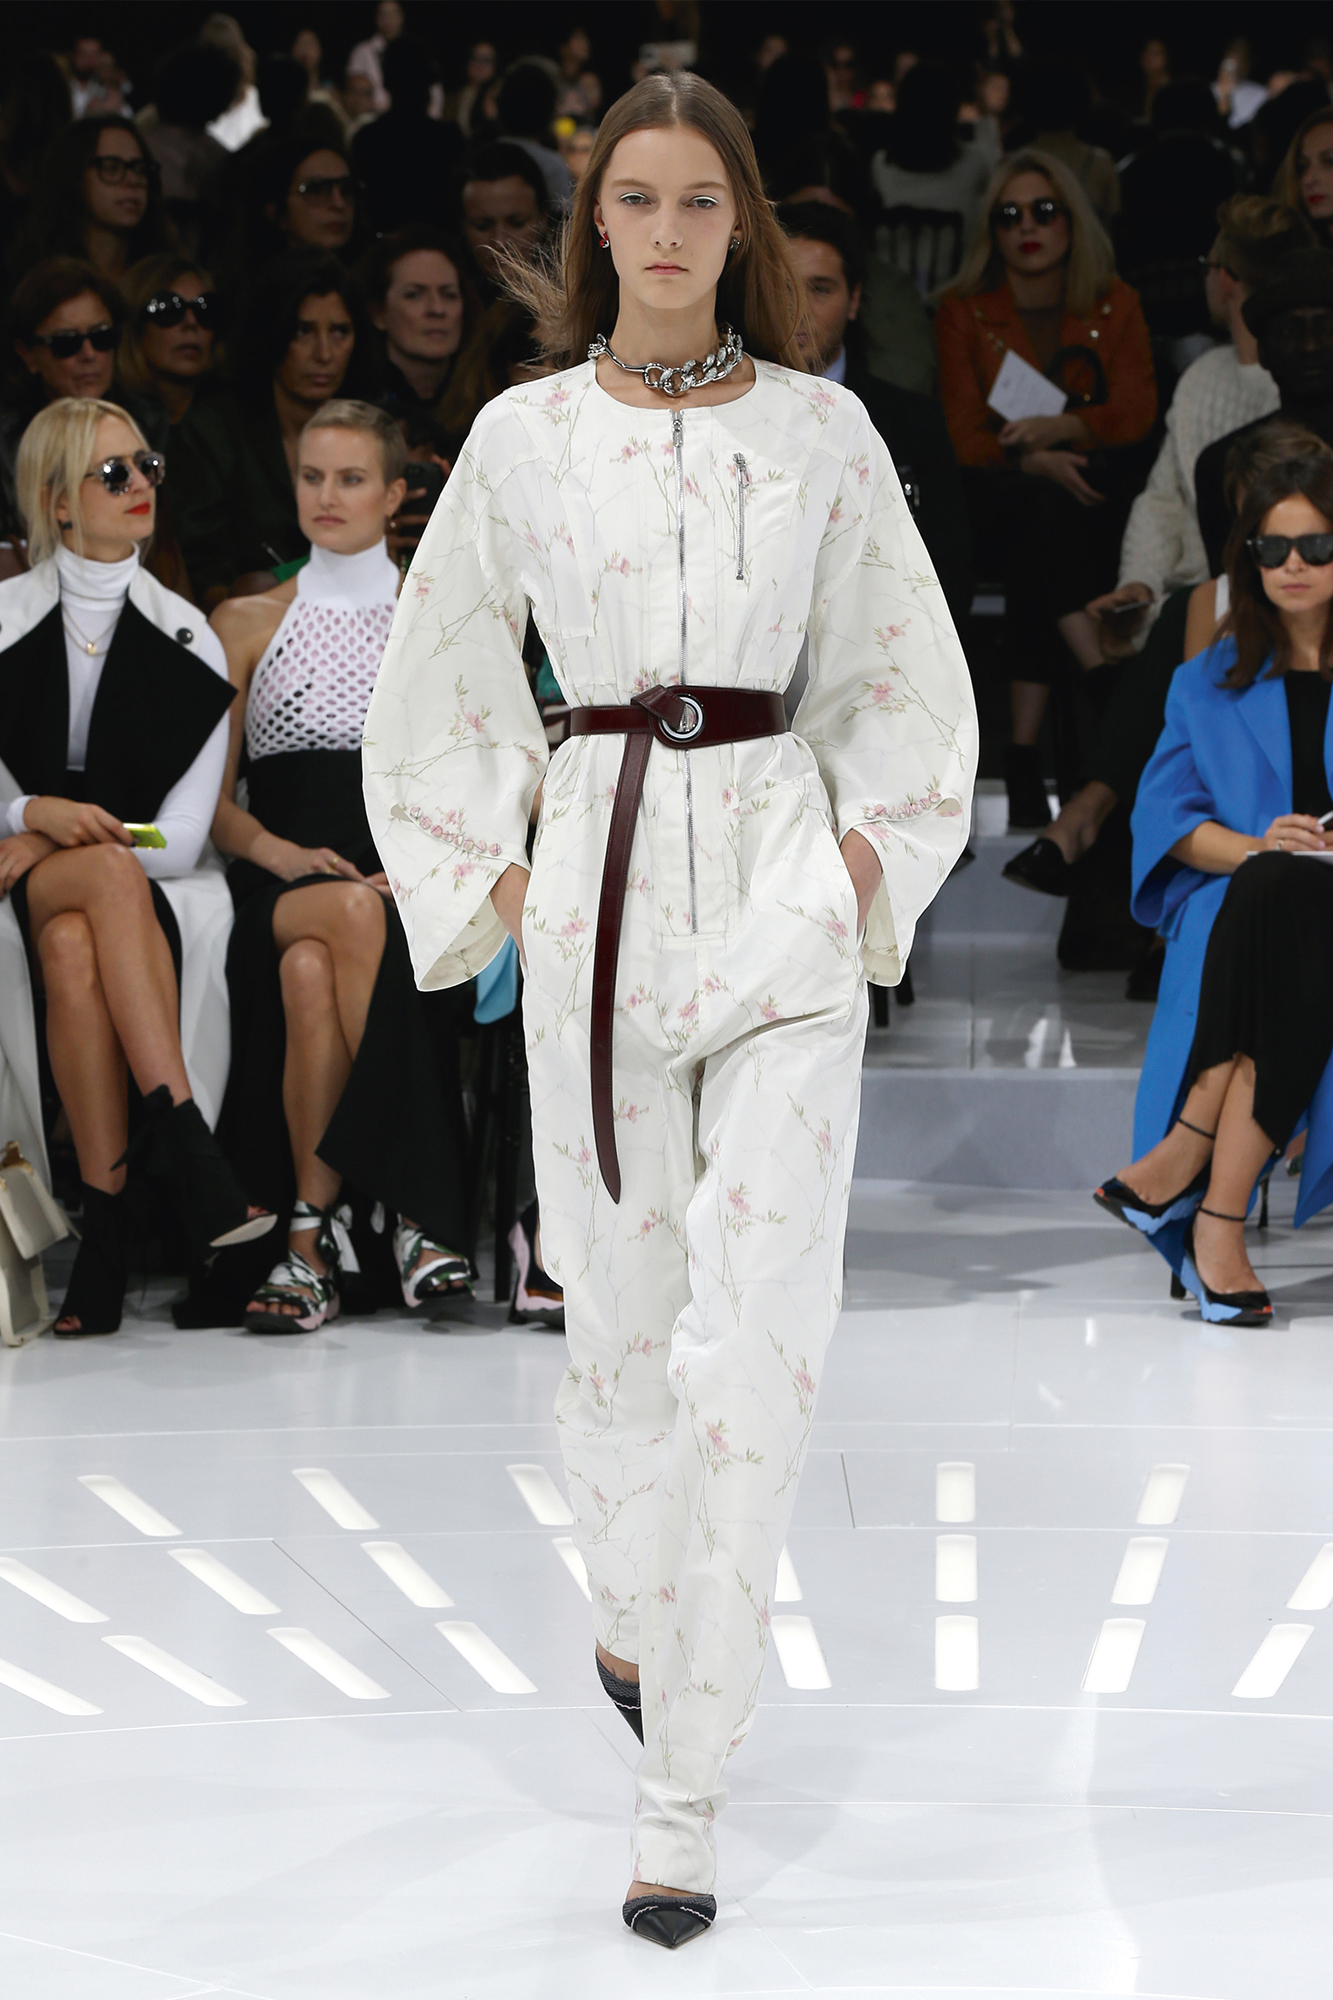 New Western Fashion Christian Dior Ready To Wear Dresses Spring Summer Collection 2015 (19)